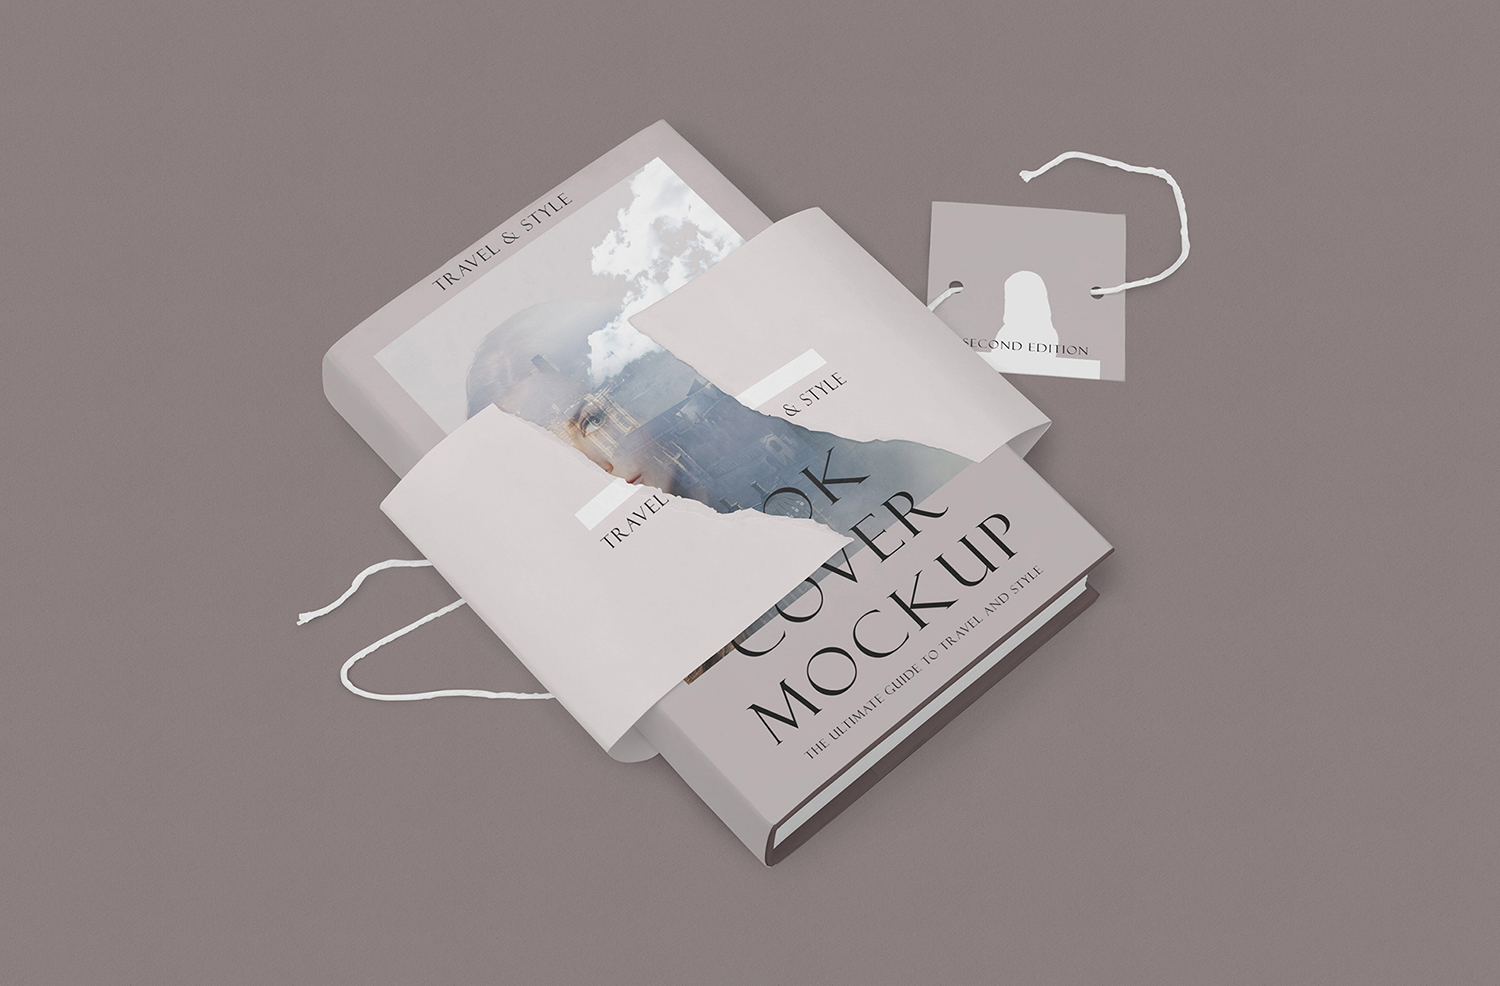 Free Customizable Hardcover Book Mockup